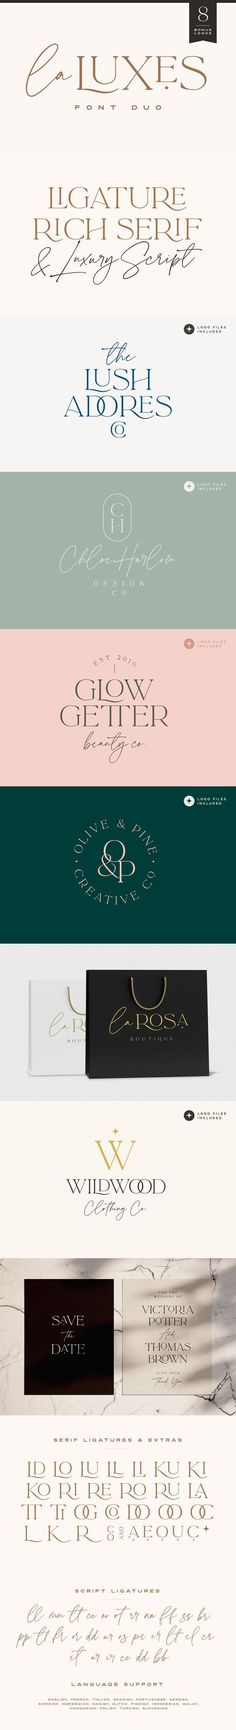 Indulge yourself in a luxurious typography pairing with La Luxes; a classic font duo consisting of an elegant Script & ligature-rich Serif. Also included in this product are 8 bonus logo templates… Vintage Typography, Typography Fonts, Typeface Font, Cursive Fonts, Vintage Fonts, Typography Design, Hand Lettering, Branding Design, Logo Design